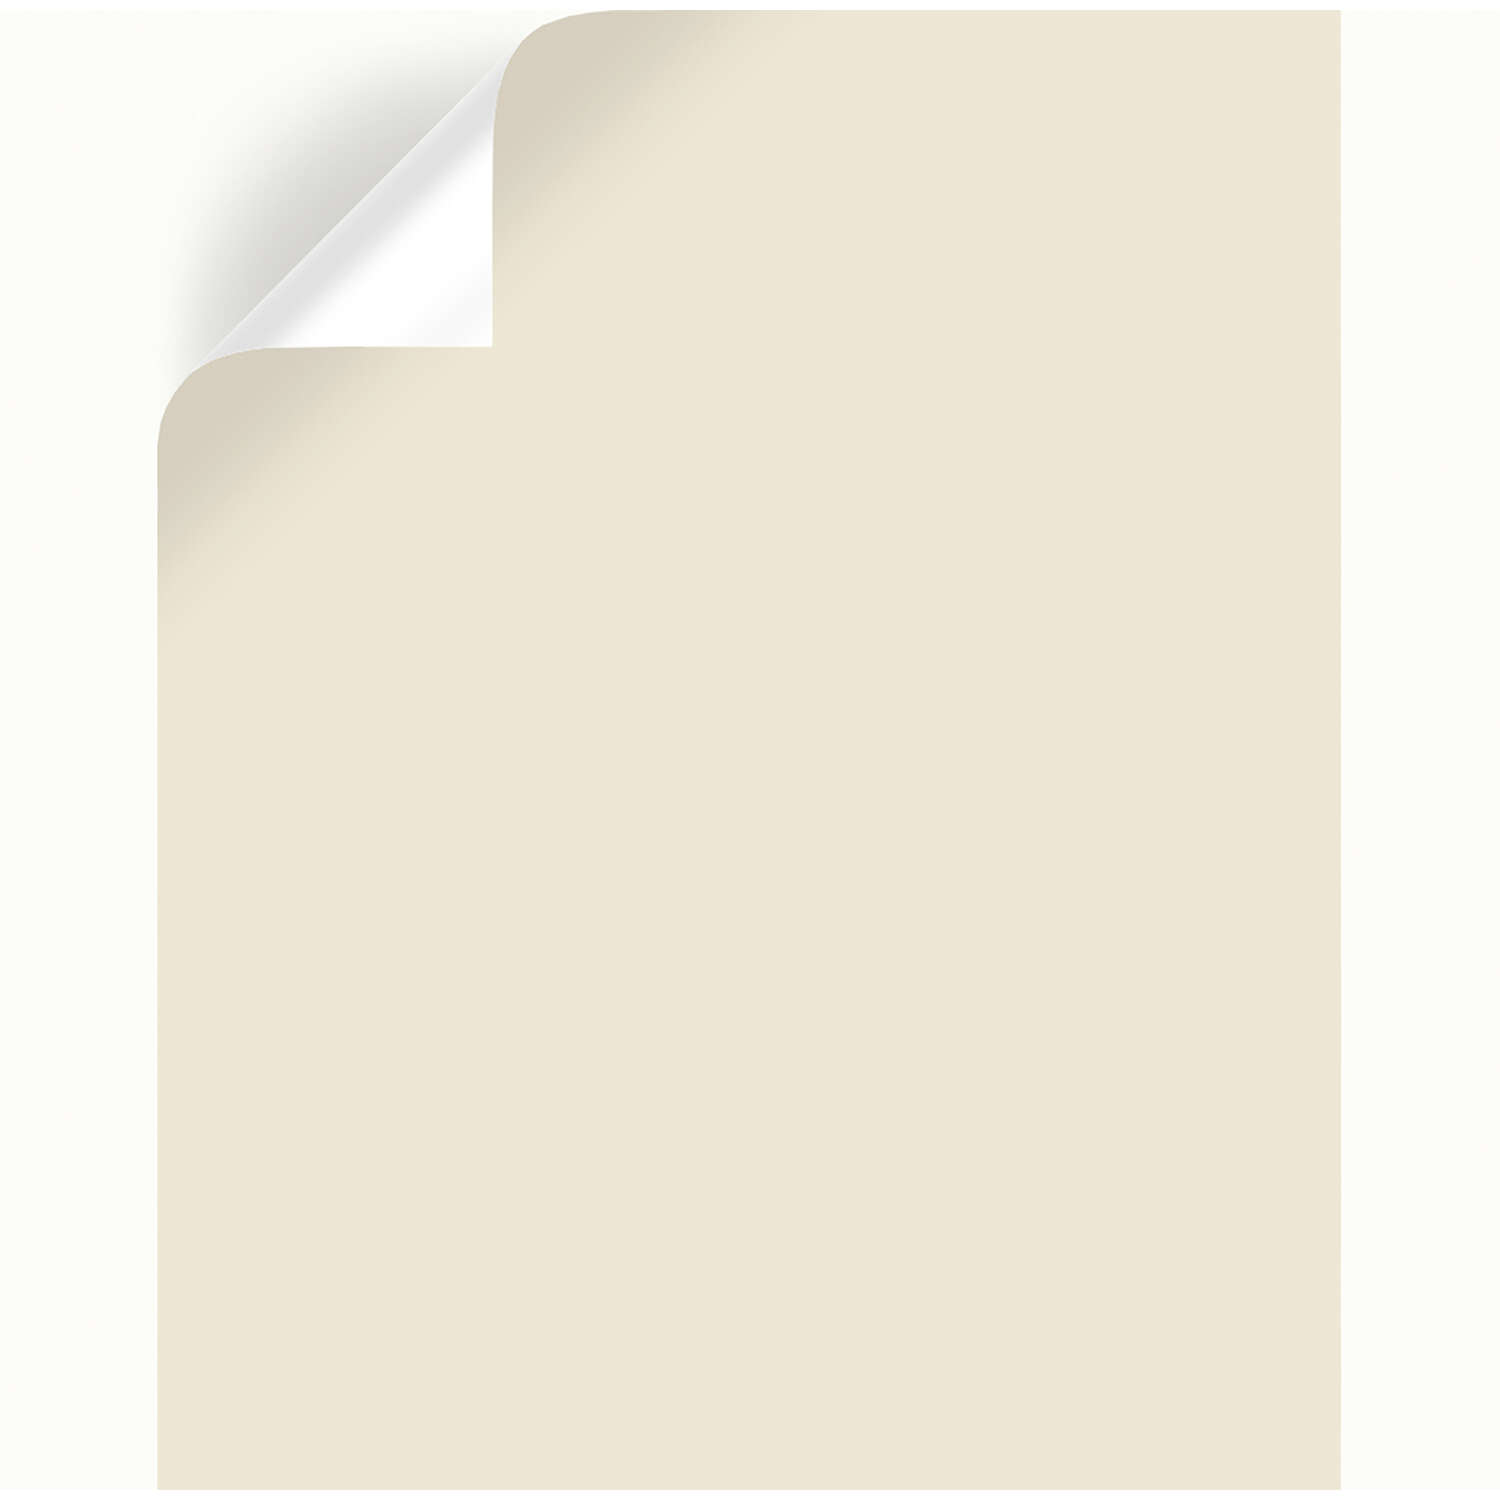 Magnolia Home by Joanna Gaines  Carter Cr�me  Peel & Stick Color Sample